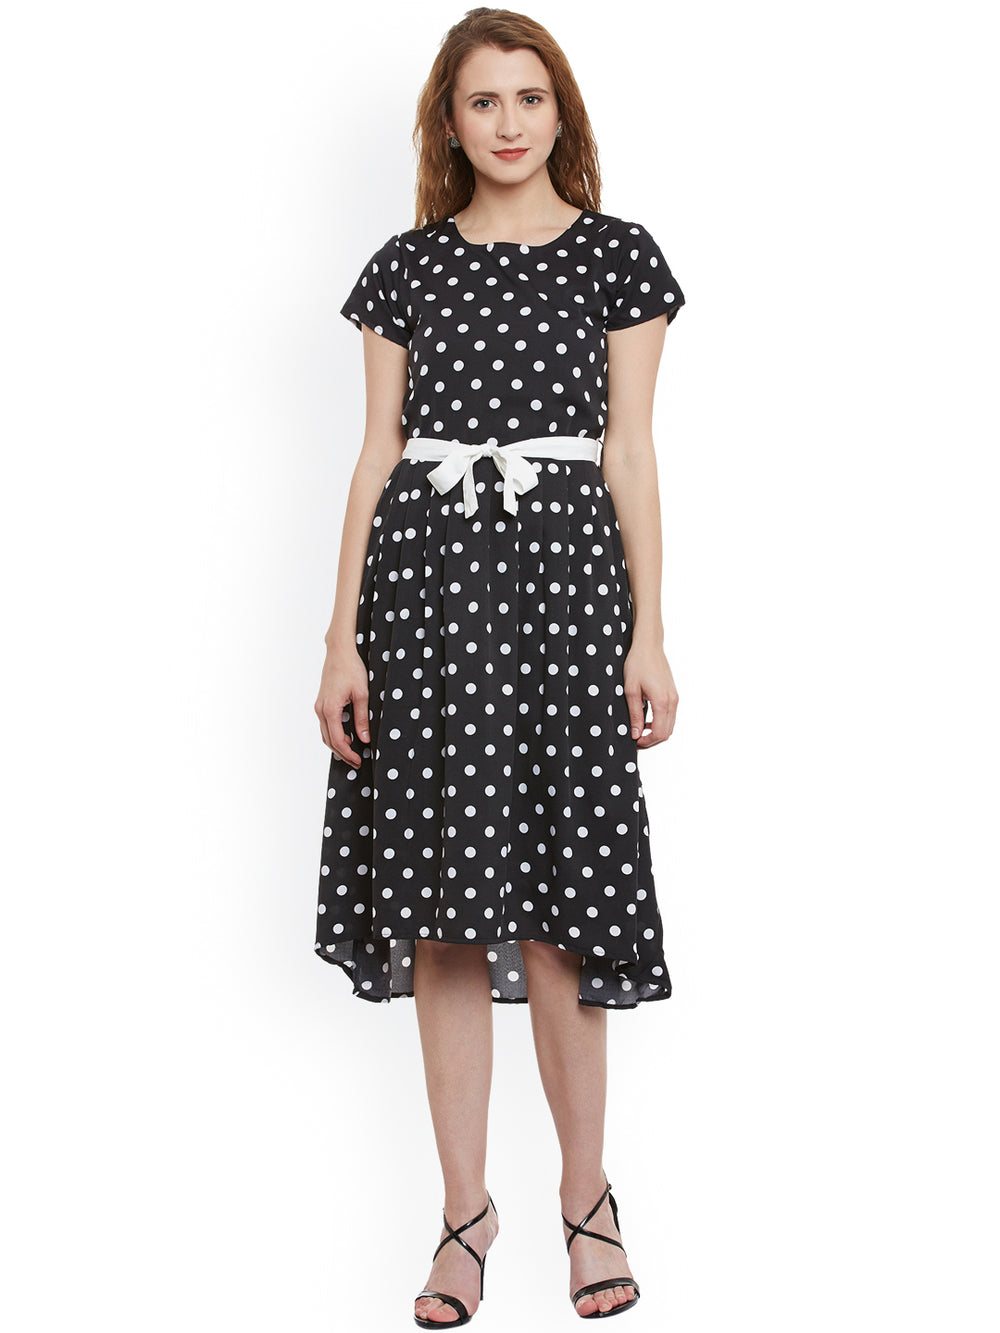 eyelet Women Black & White Polka Dot Print Fit & Flare Dress